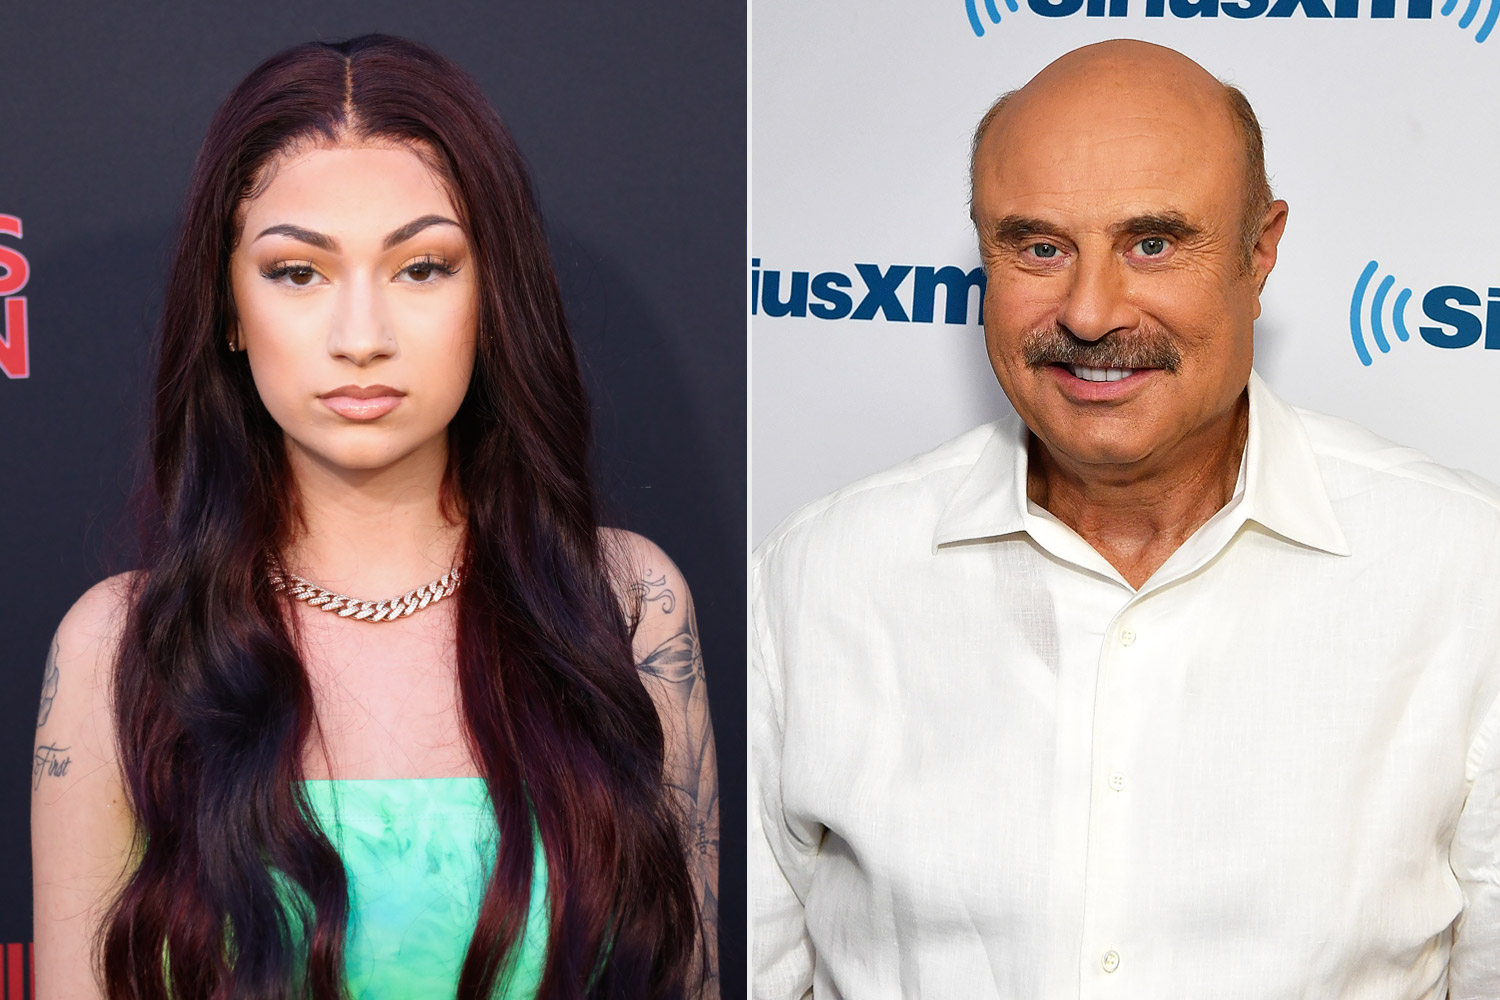 Bhad Bhabie and Dr. Phil